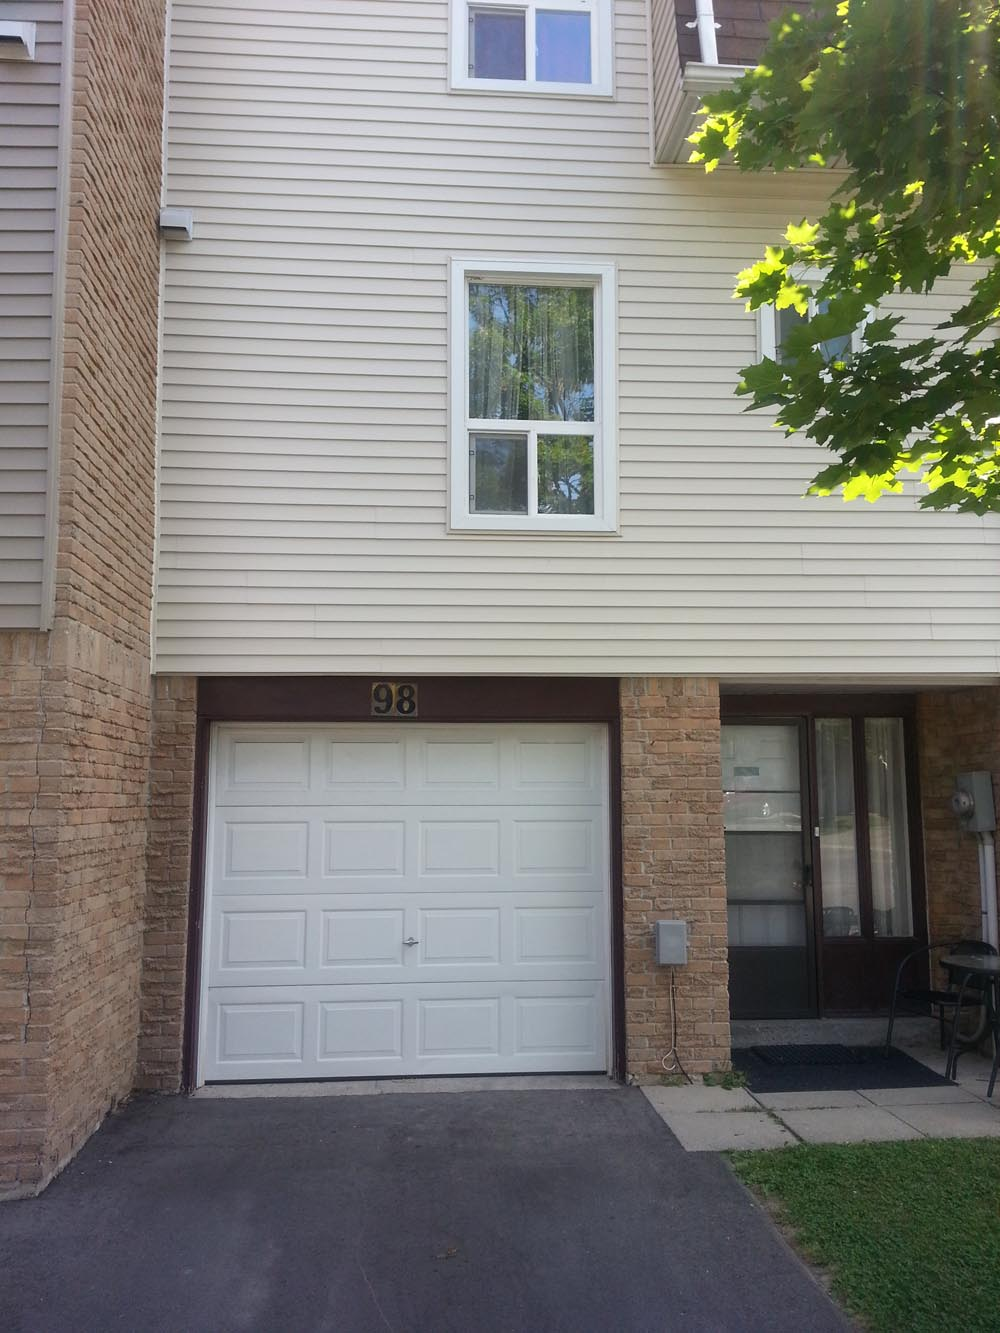 Attractive 3 Bed 1 5 Bath Townhome For Rent In Heart Of Brampton - 125618 2